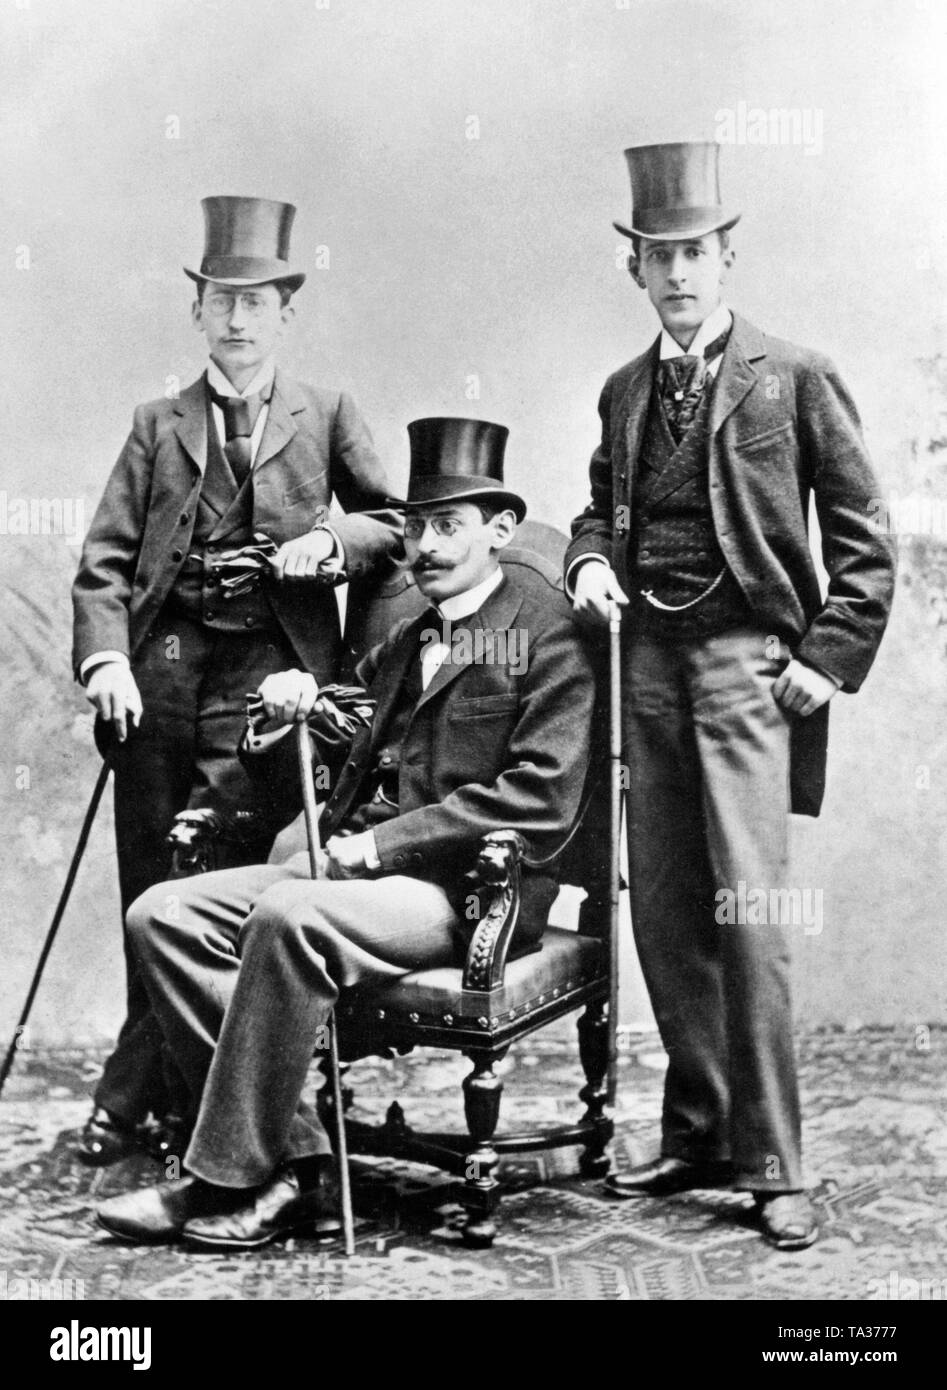 A group photo of the first German filmakers Wolff, Hecht and Hessberg. Undated photo, probably the 1900s. - Stock Image